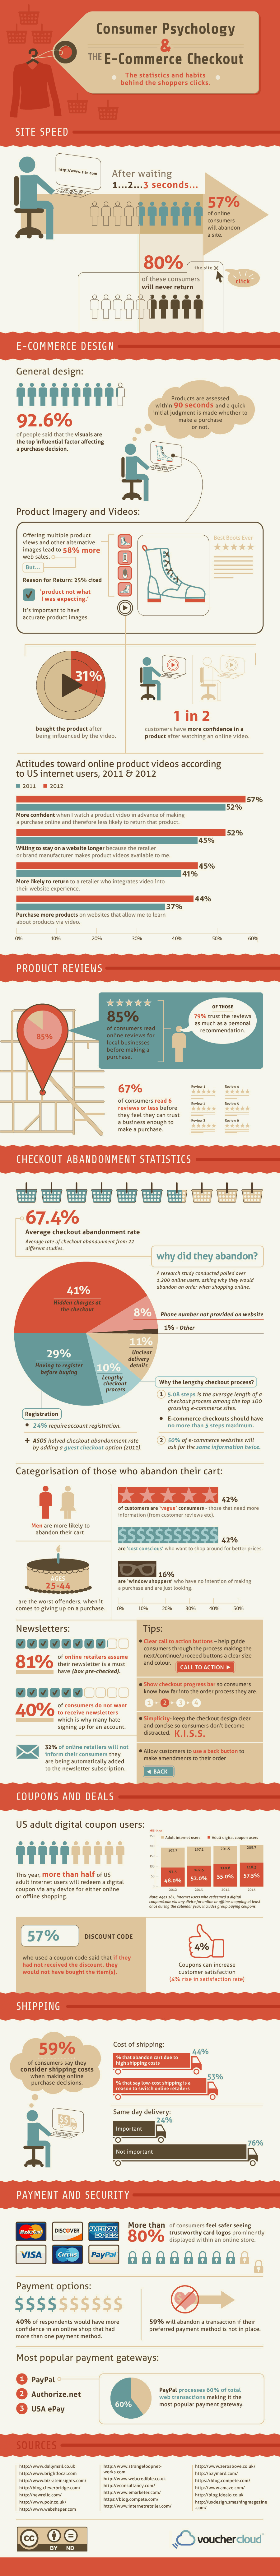 Consumer Psychology and ECommerce Checkouts Infographic